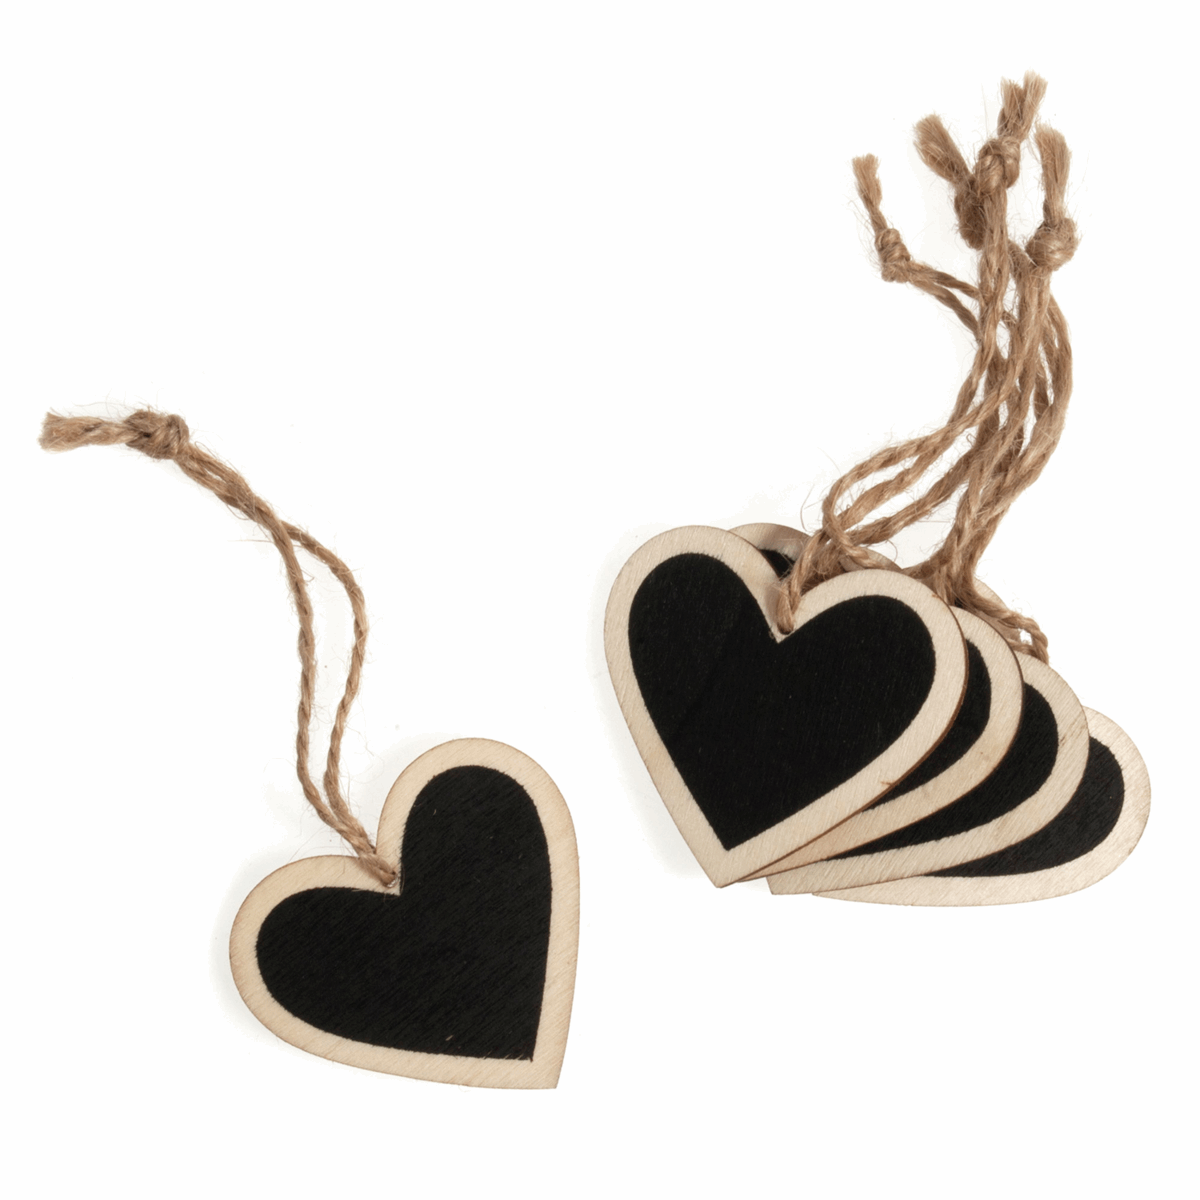 Picture of Table Decoration: Wooden Heart with Blackboard: 4.8 x 5cm: Pack of 5: Natural